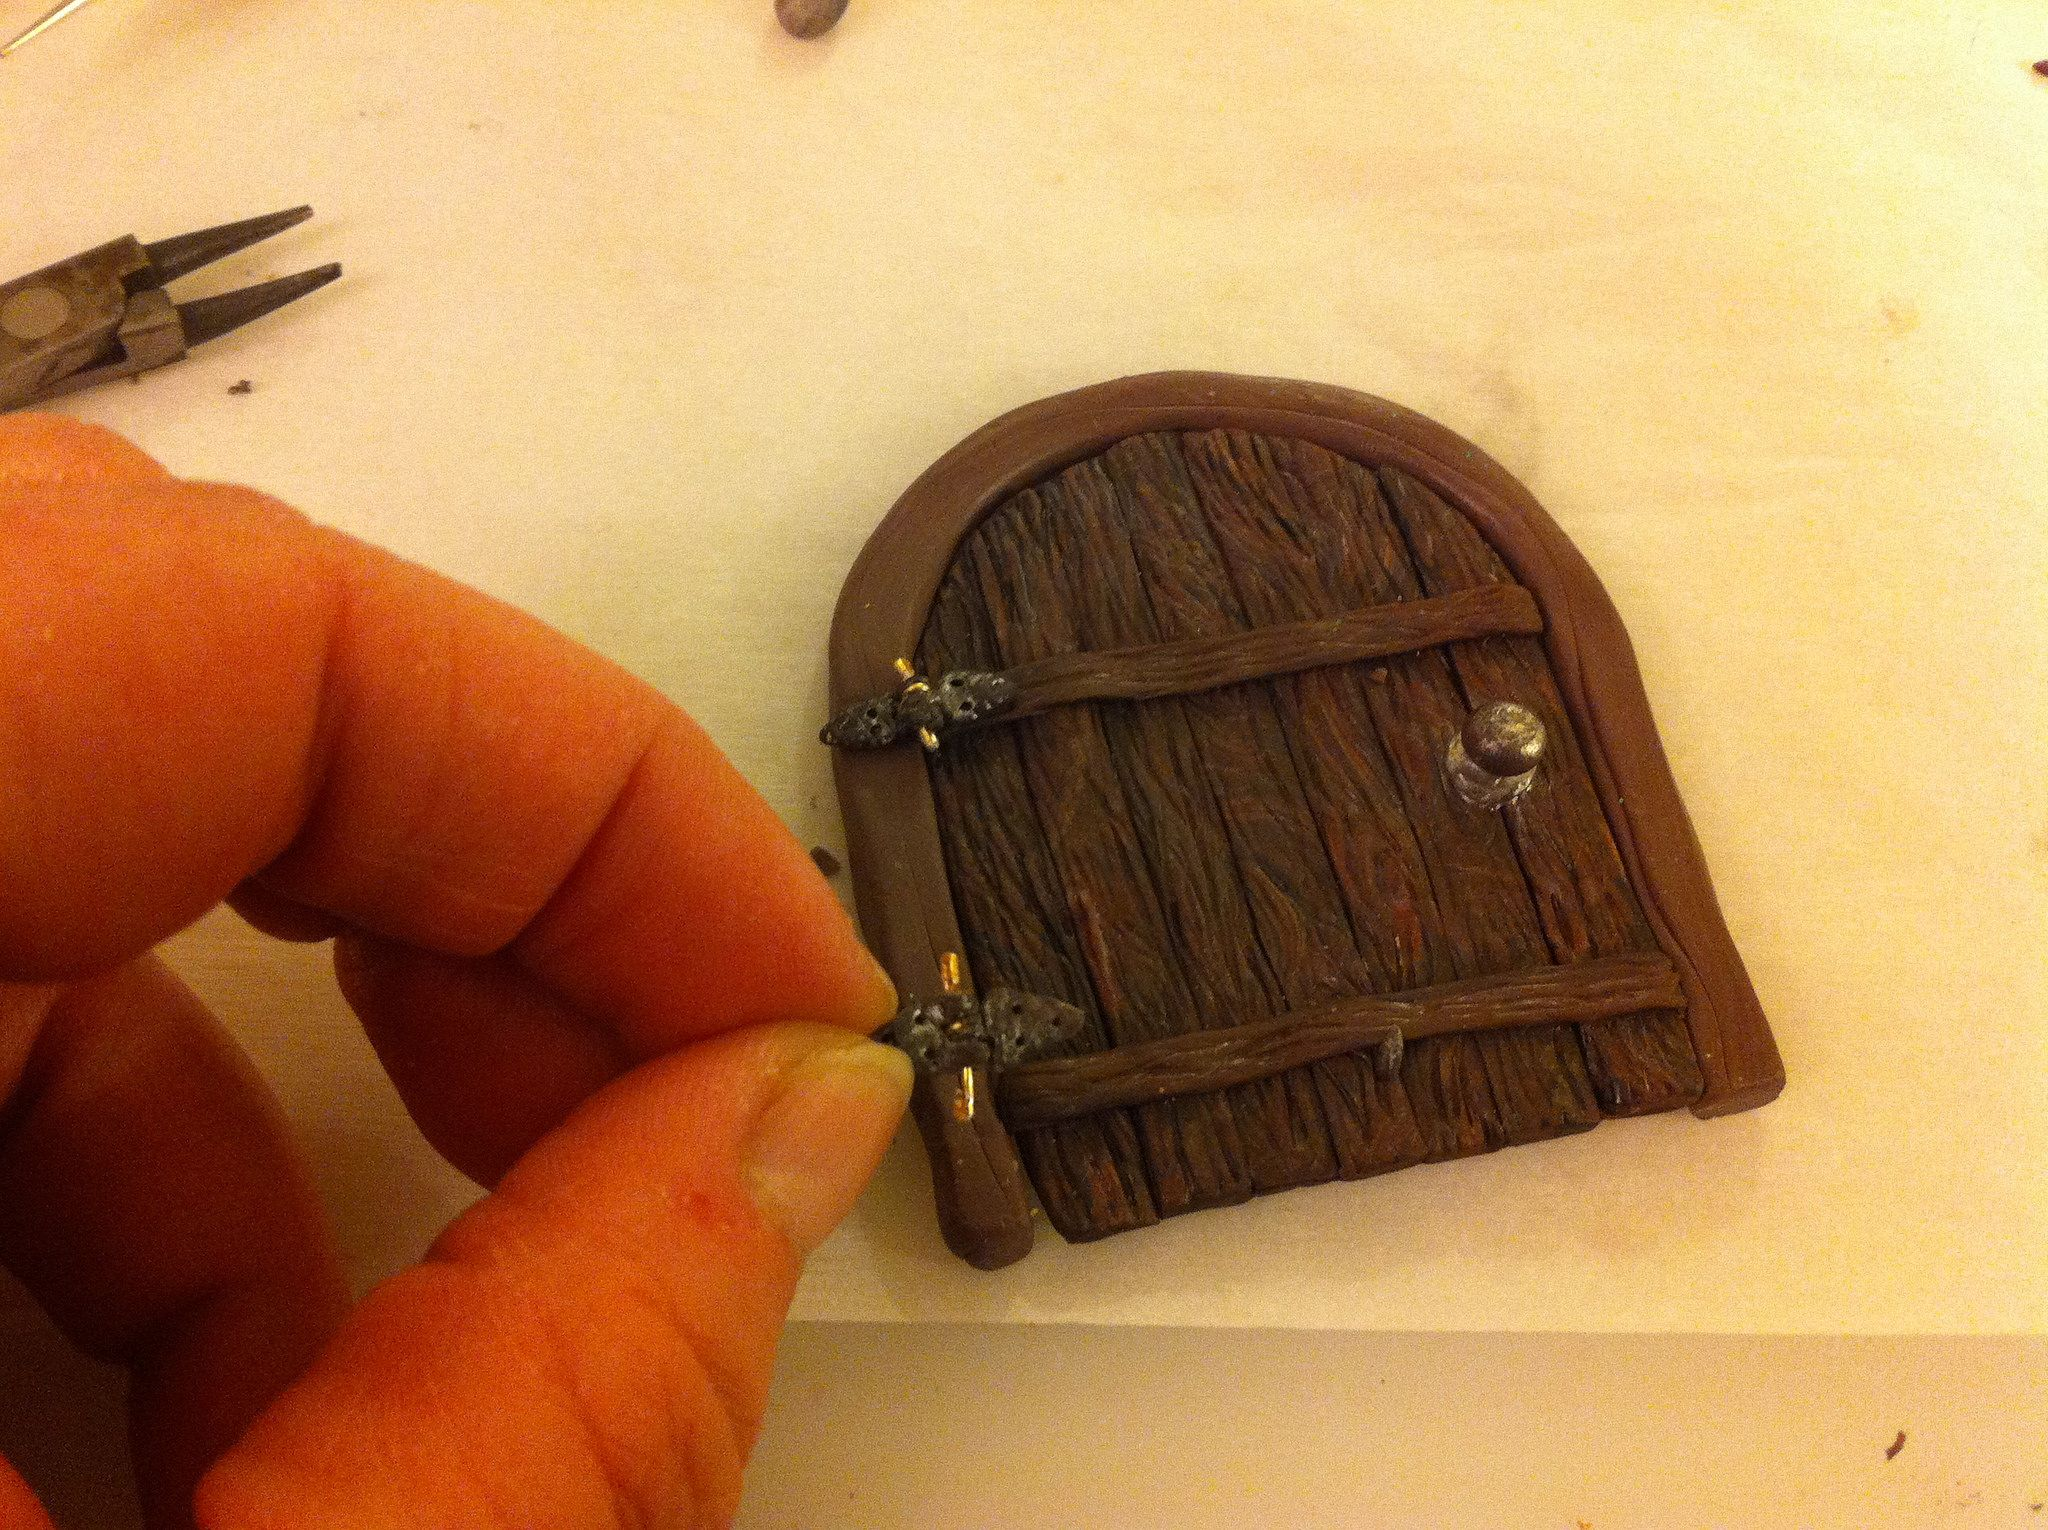 tiny clay \u0026 wire hinges for polymer clay fairy door & tiny clay \u0026 wire hinges for polymer clay fairy door | Polymer clay ...